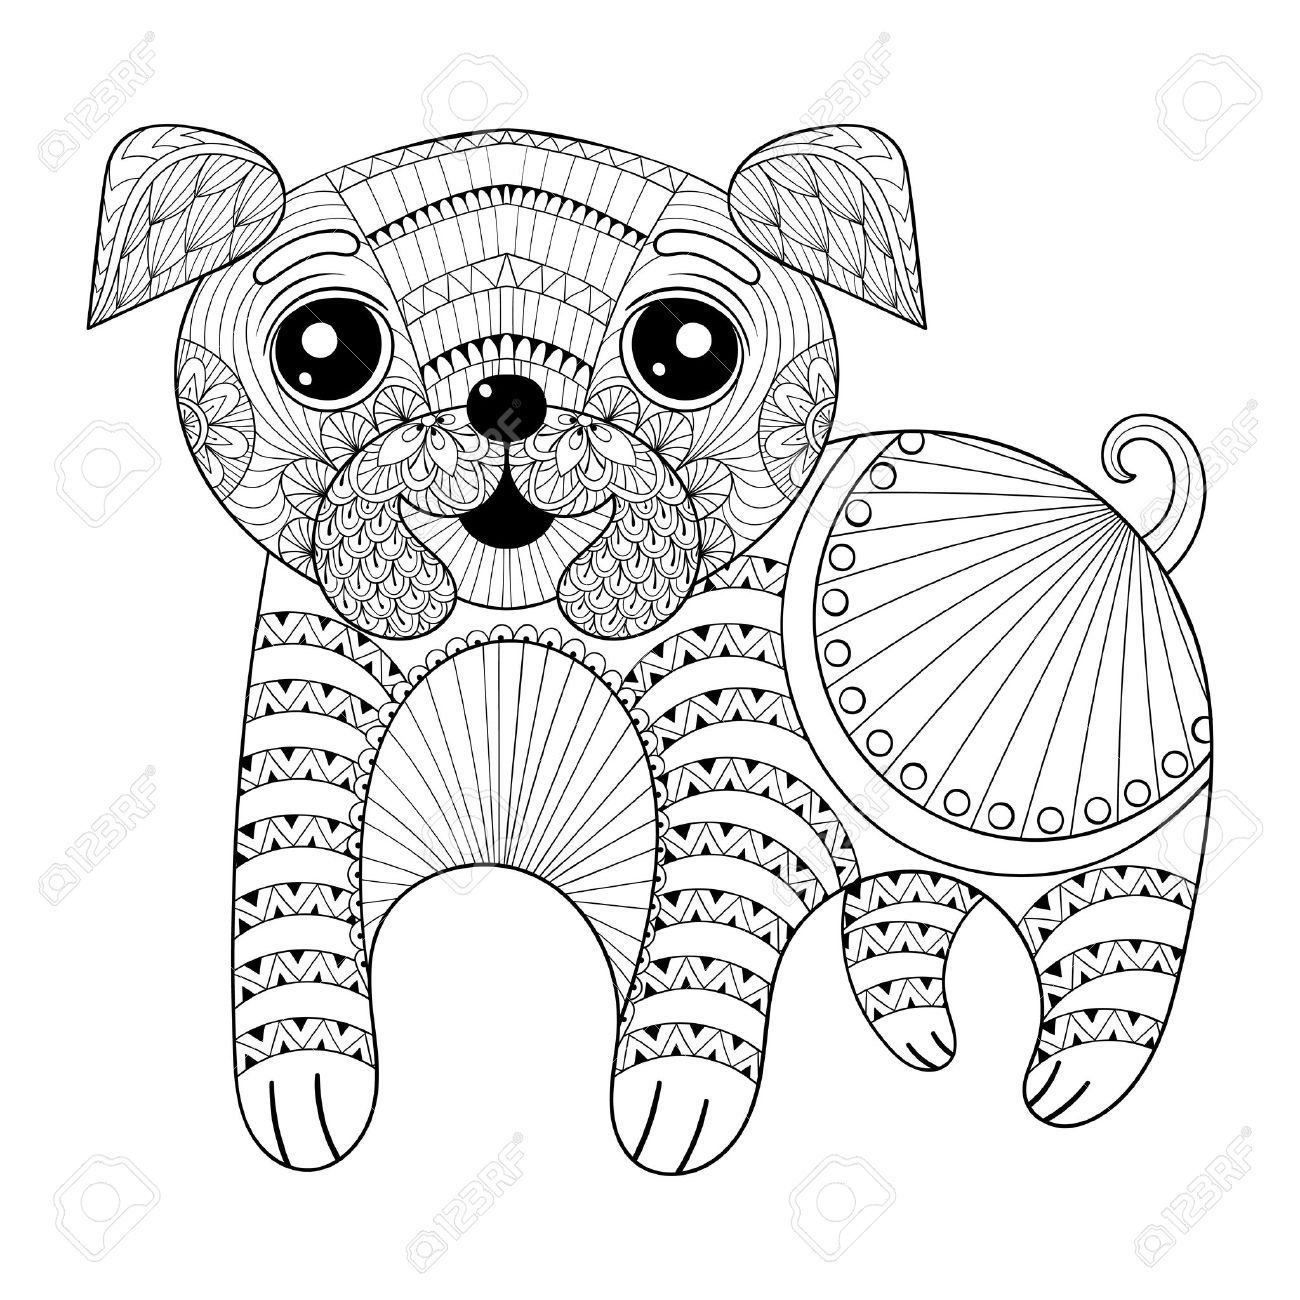 1300x1300 Zentangle Hand Drawing Dog For Antistress Coloring Pages, Post